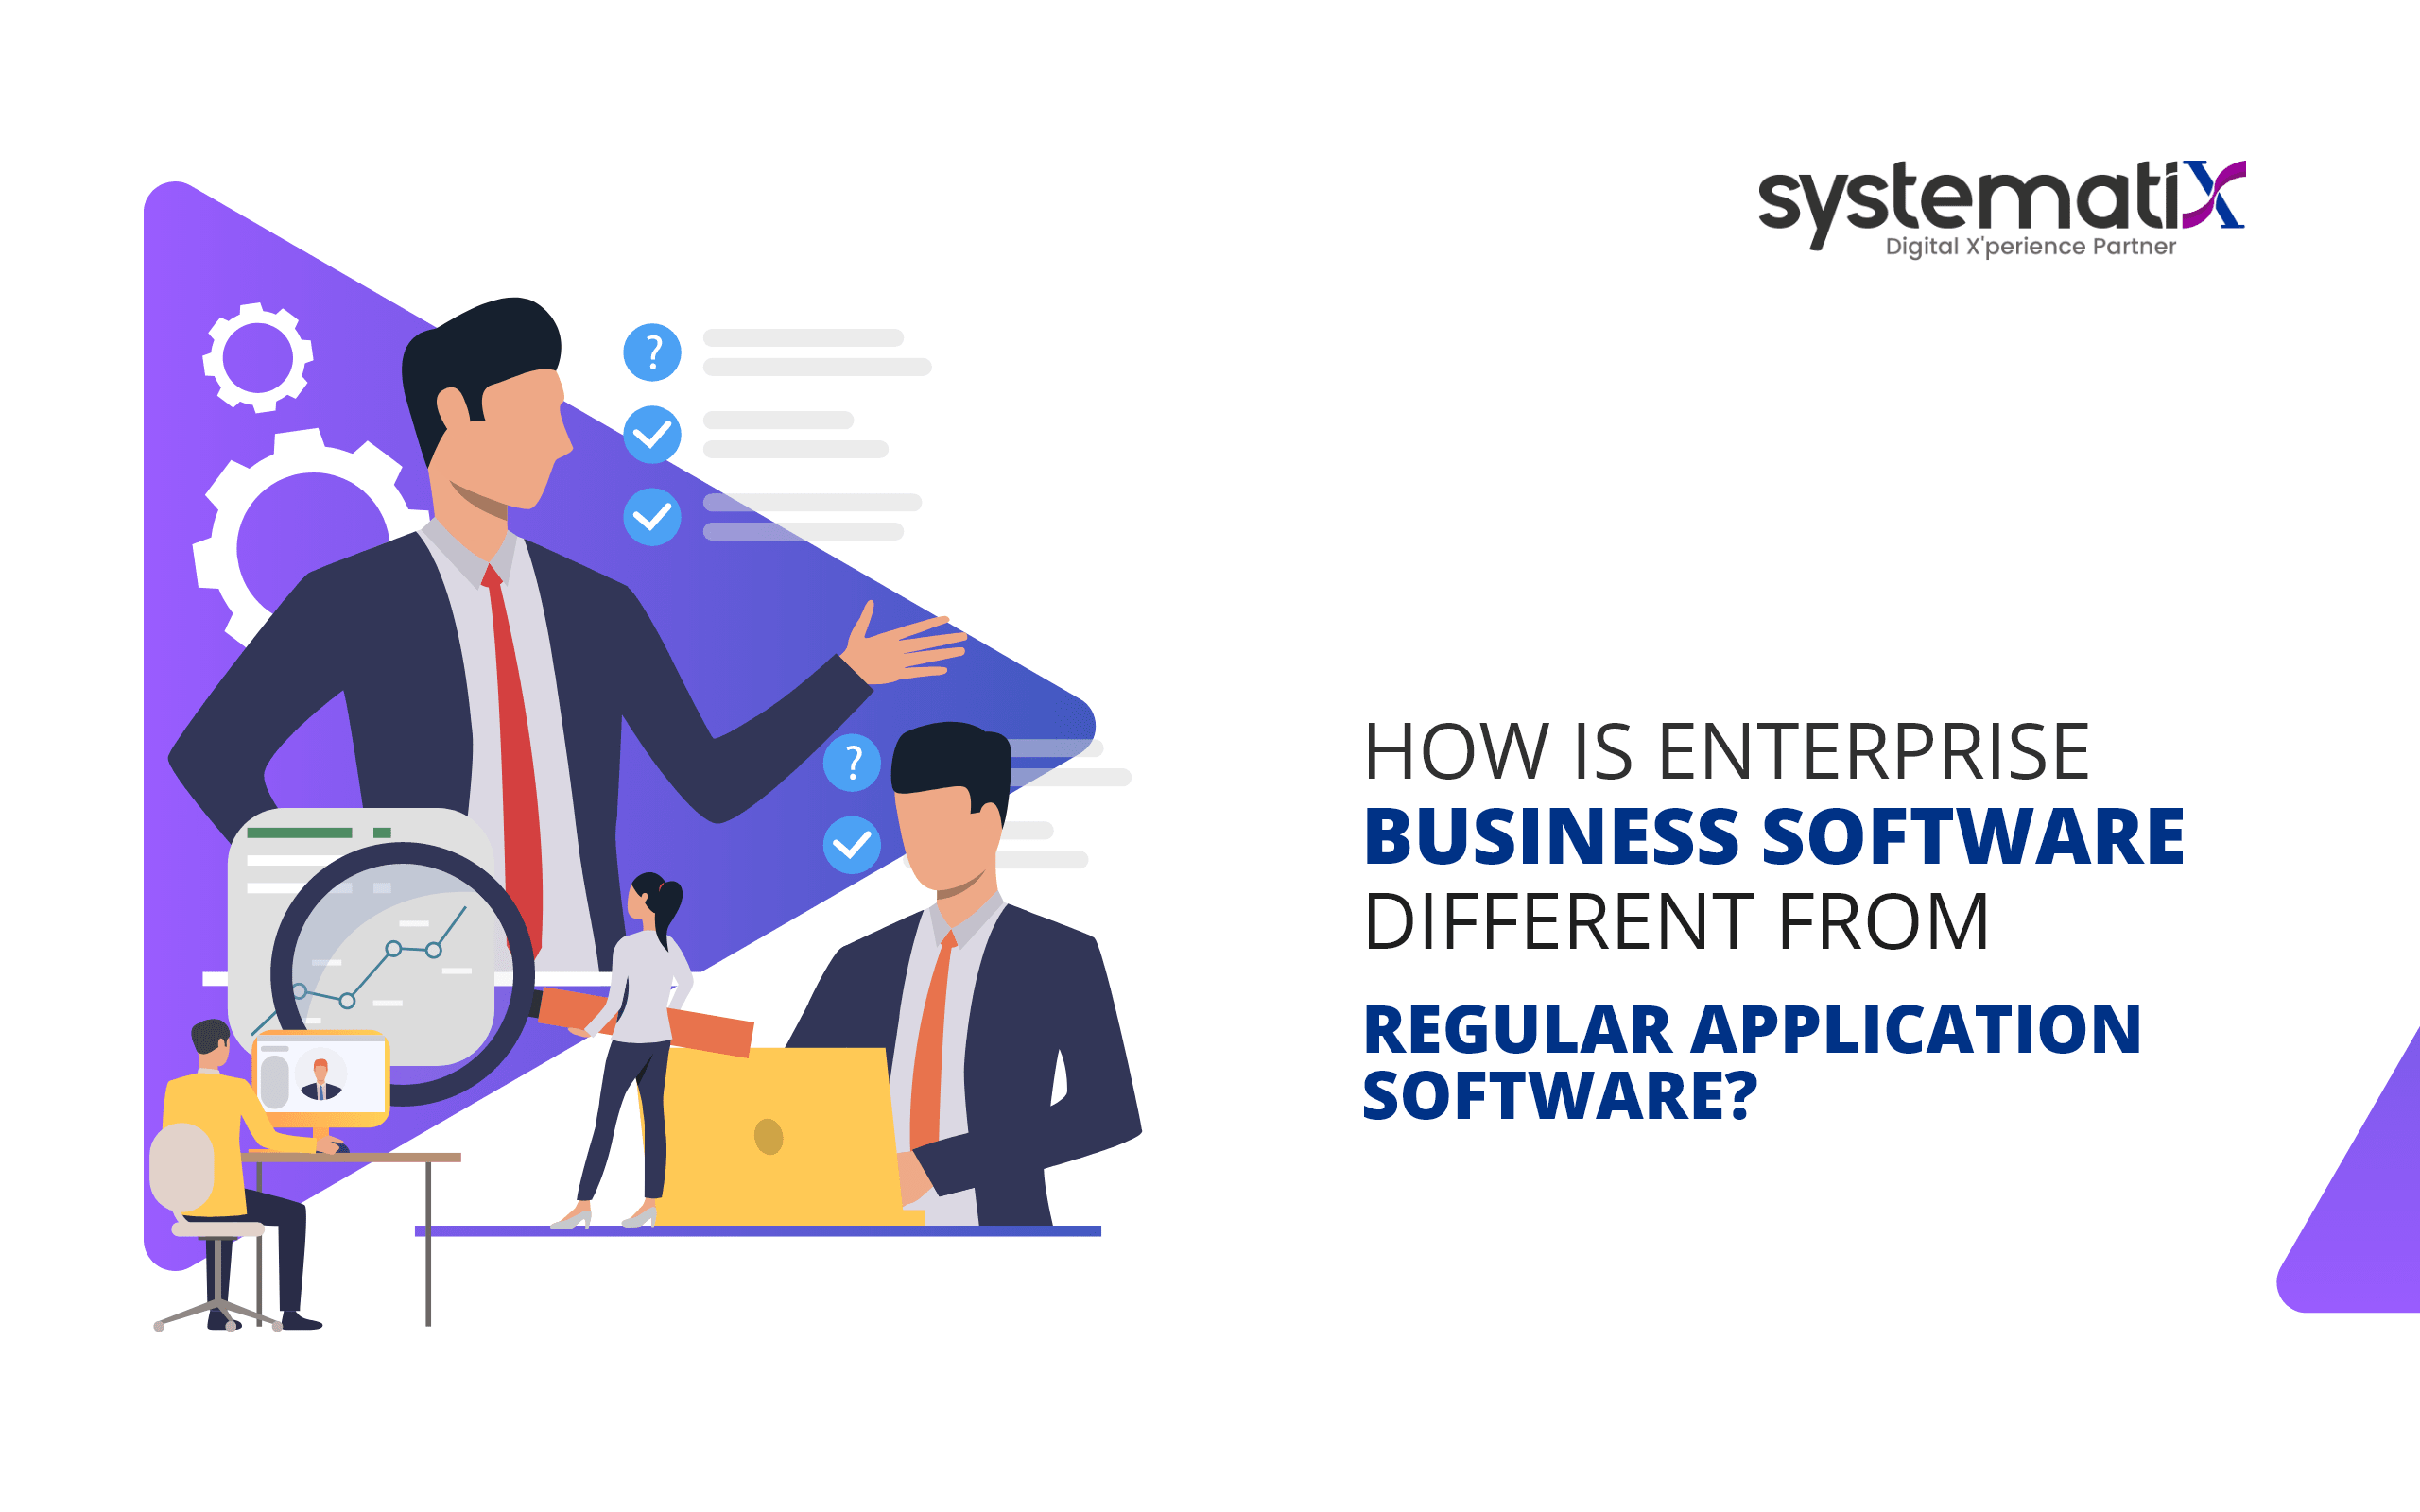 How is enterprise business software different from regular application software?